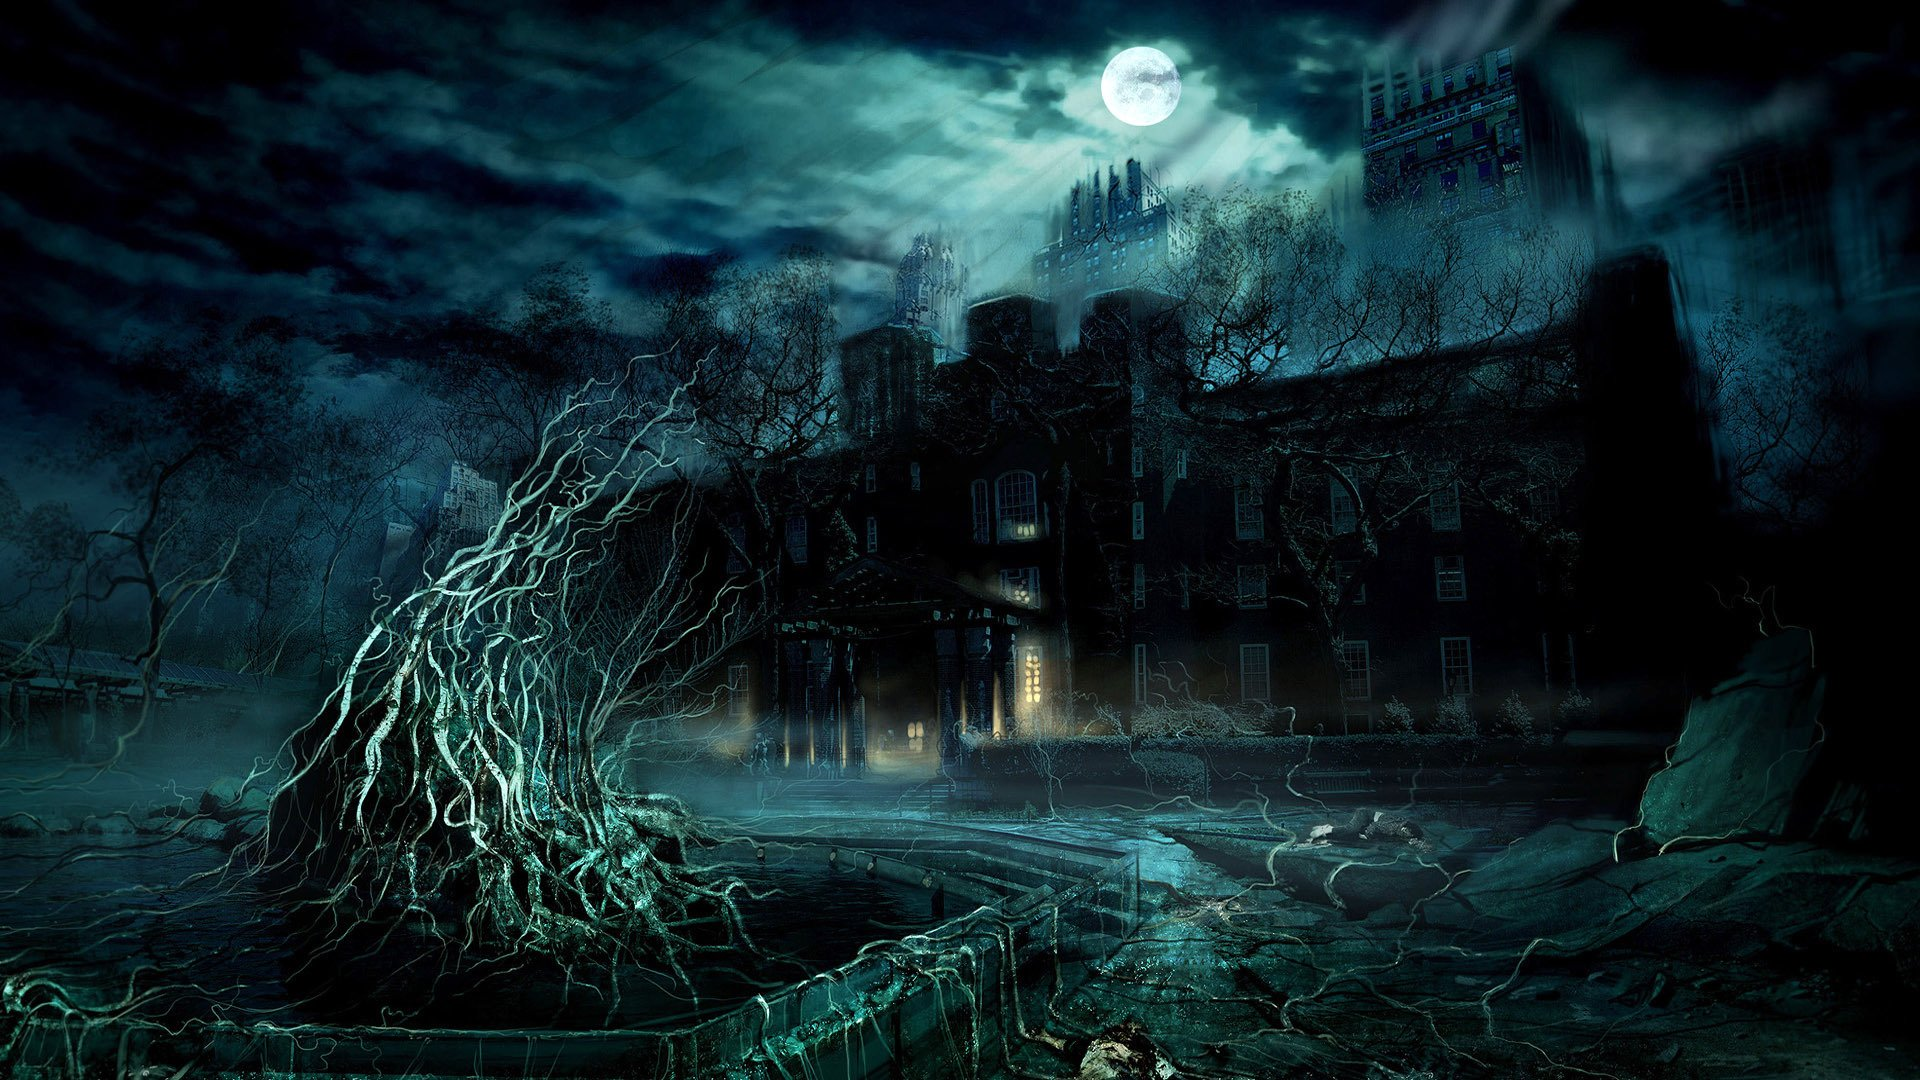 Scary Wallpapers and Modern Wallpaper